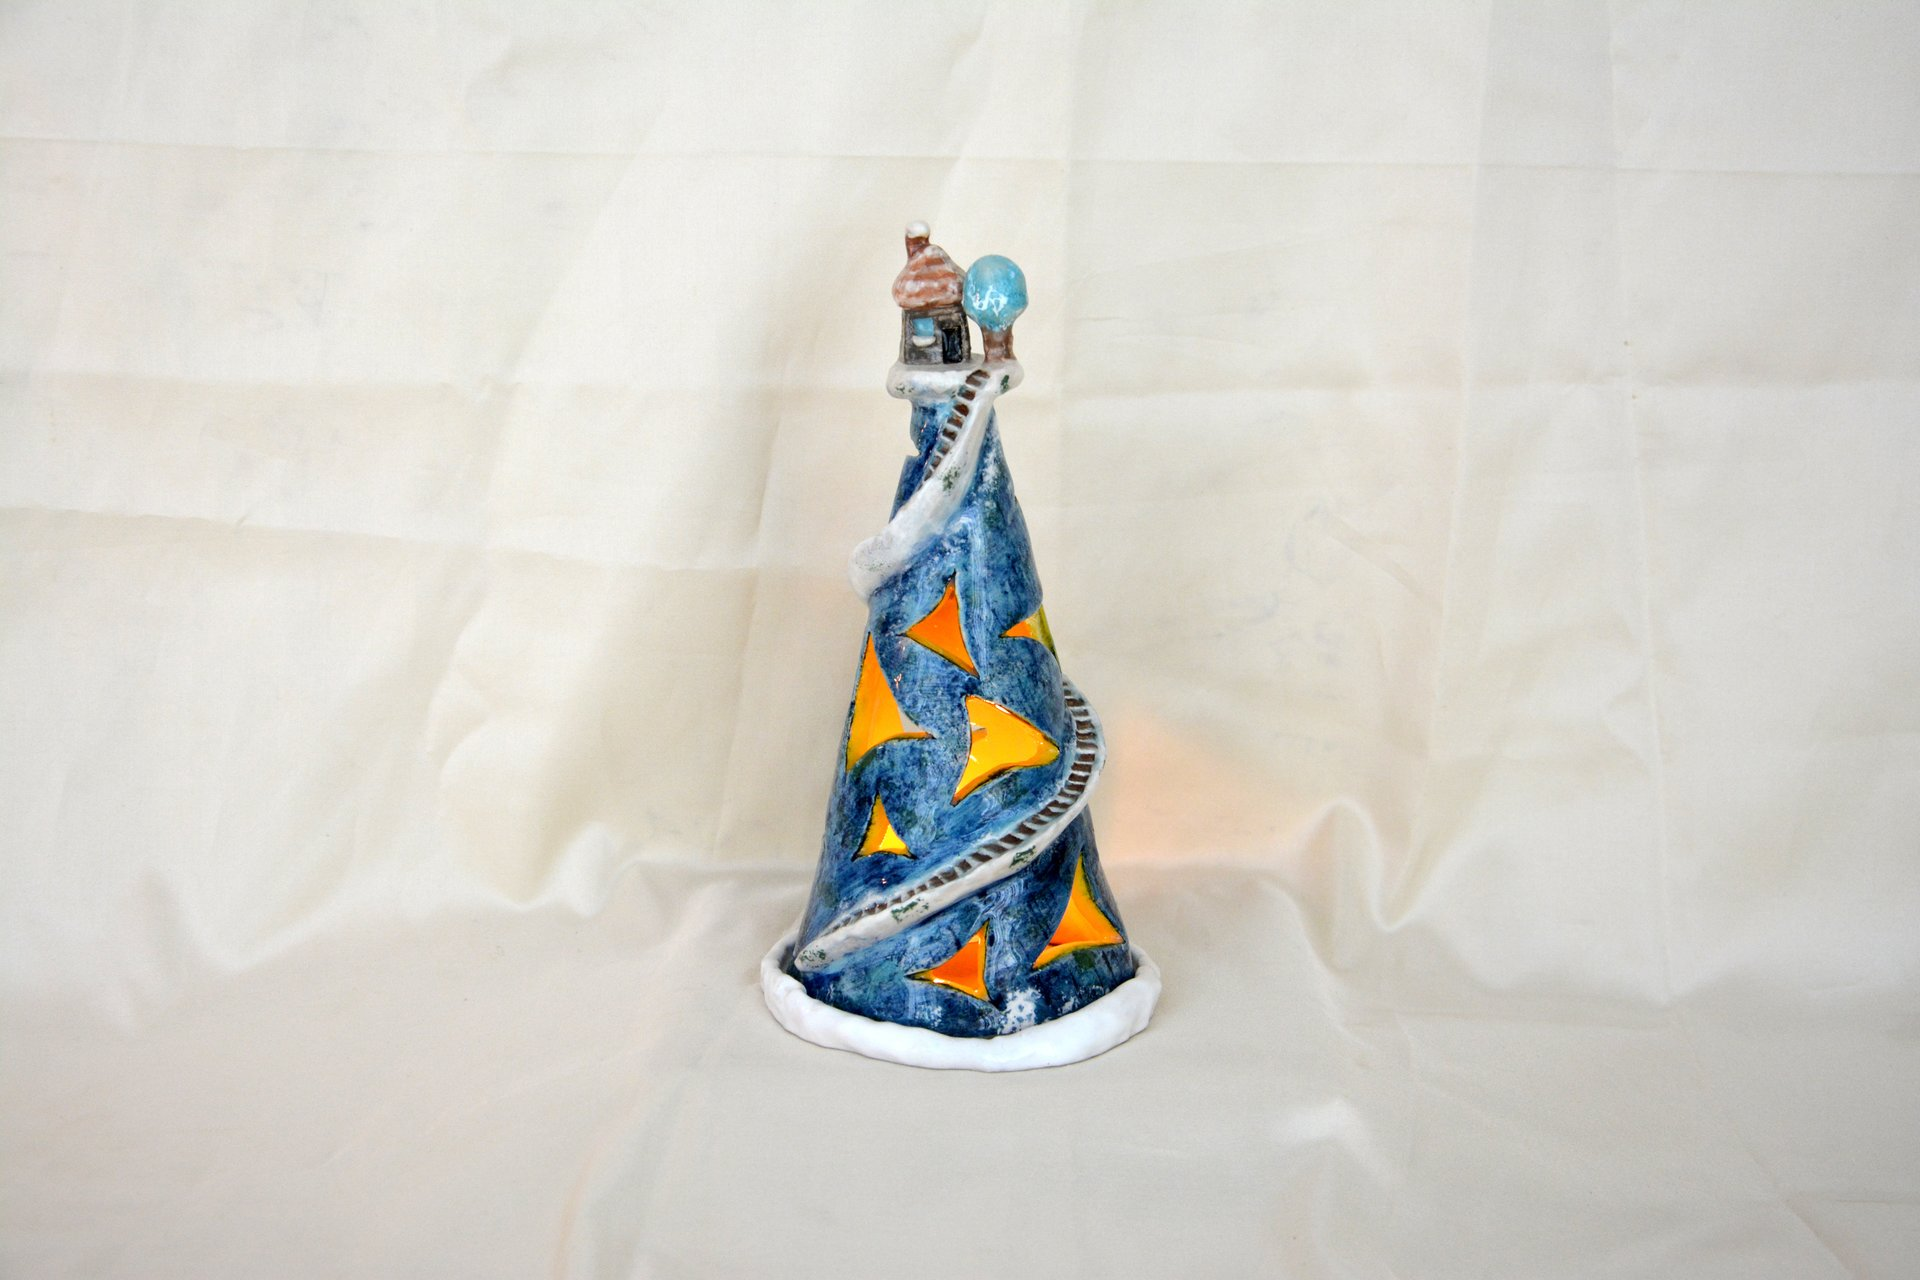 Blue night light a Small house on the mountain - Ceramic new year's decor, height - 22 cm, diameter - 12 cm, photo 1 of 2.